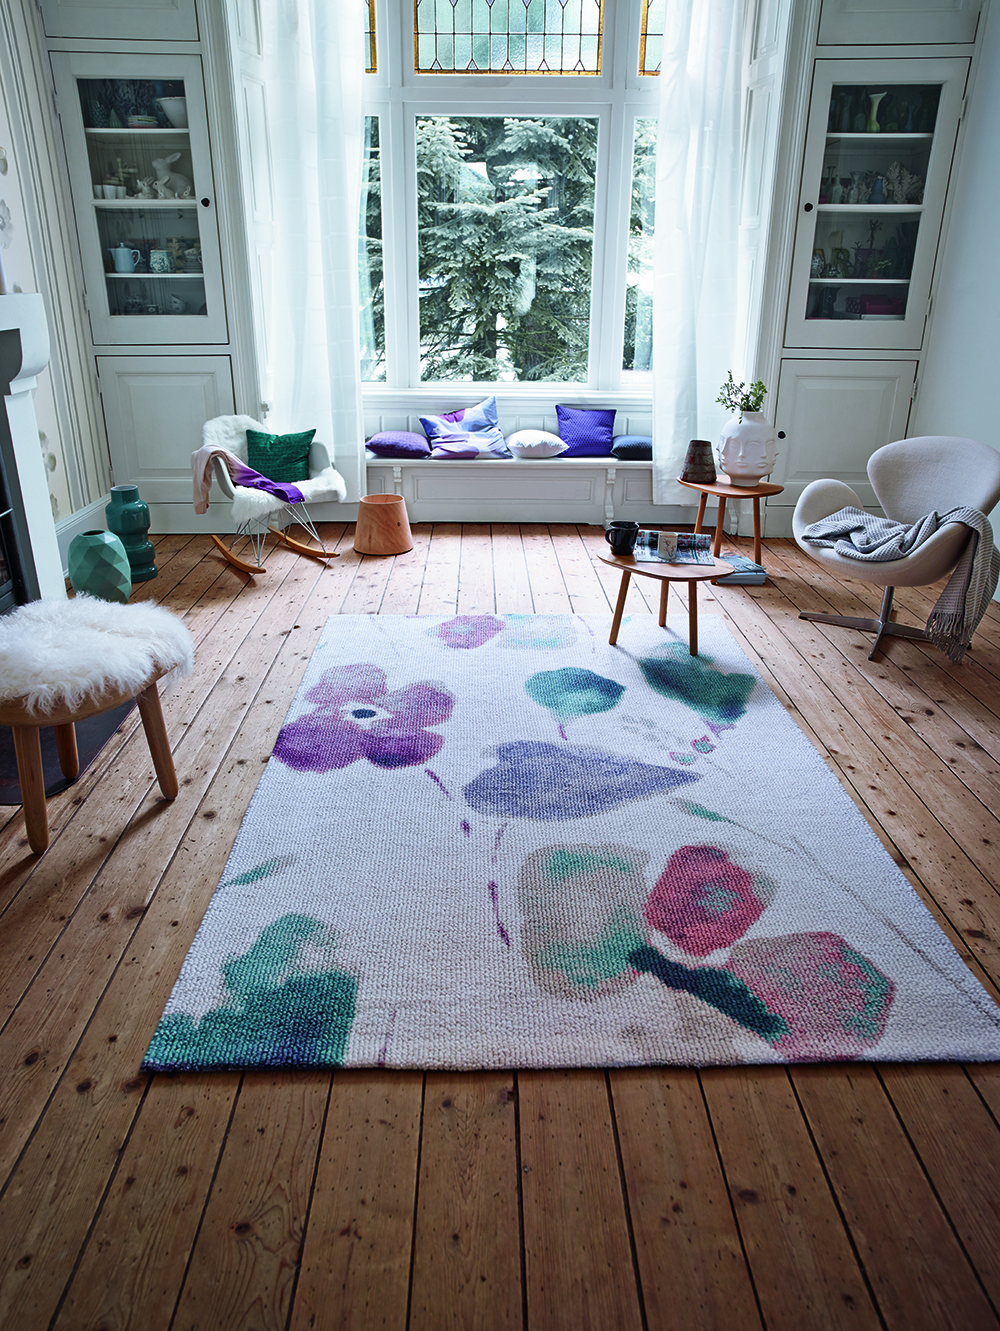 Spring Flower Dream Flower 0200-06 Rug